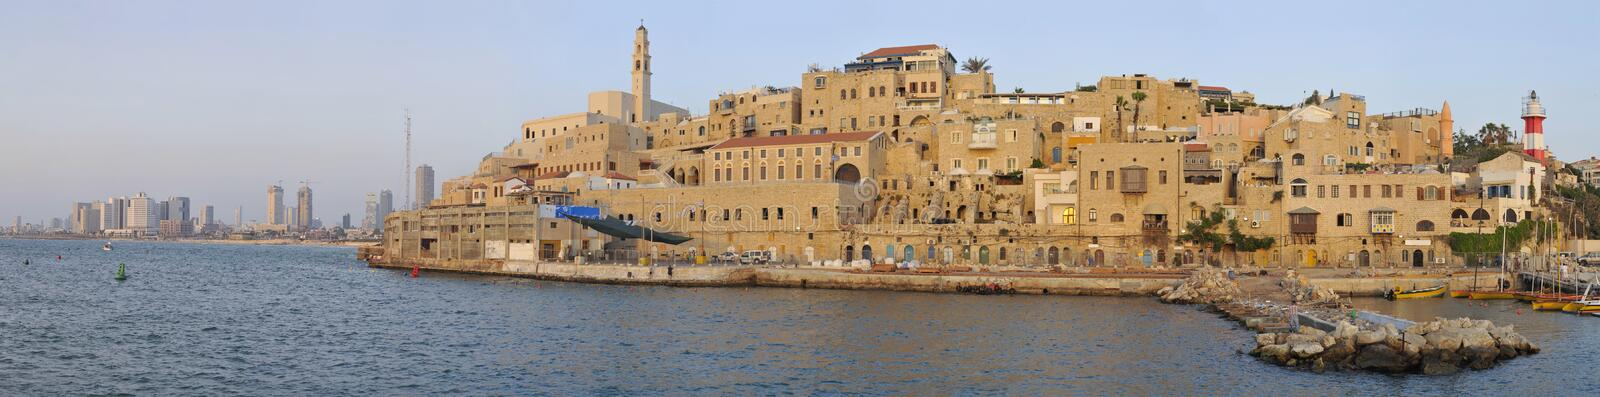 Ancient Jaffa Port royalty free stock images